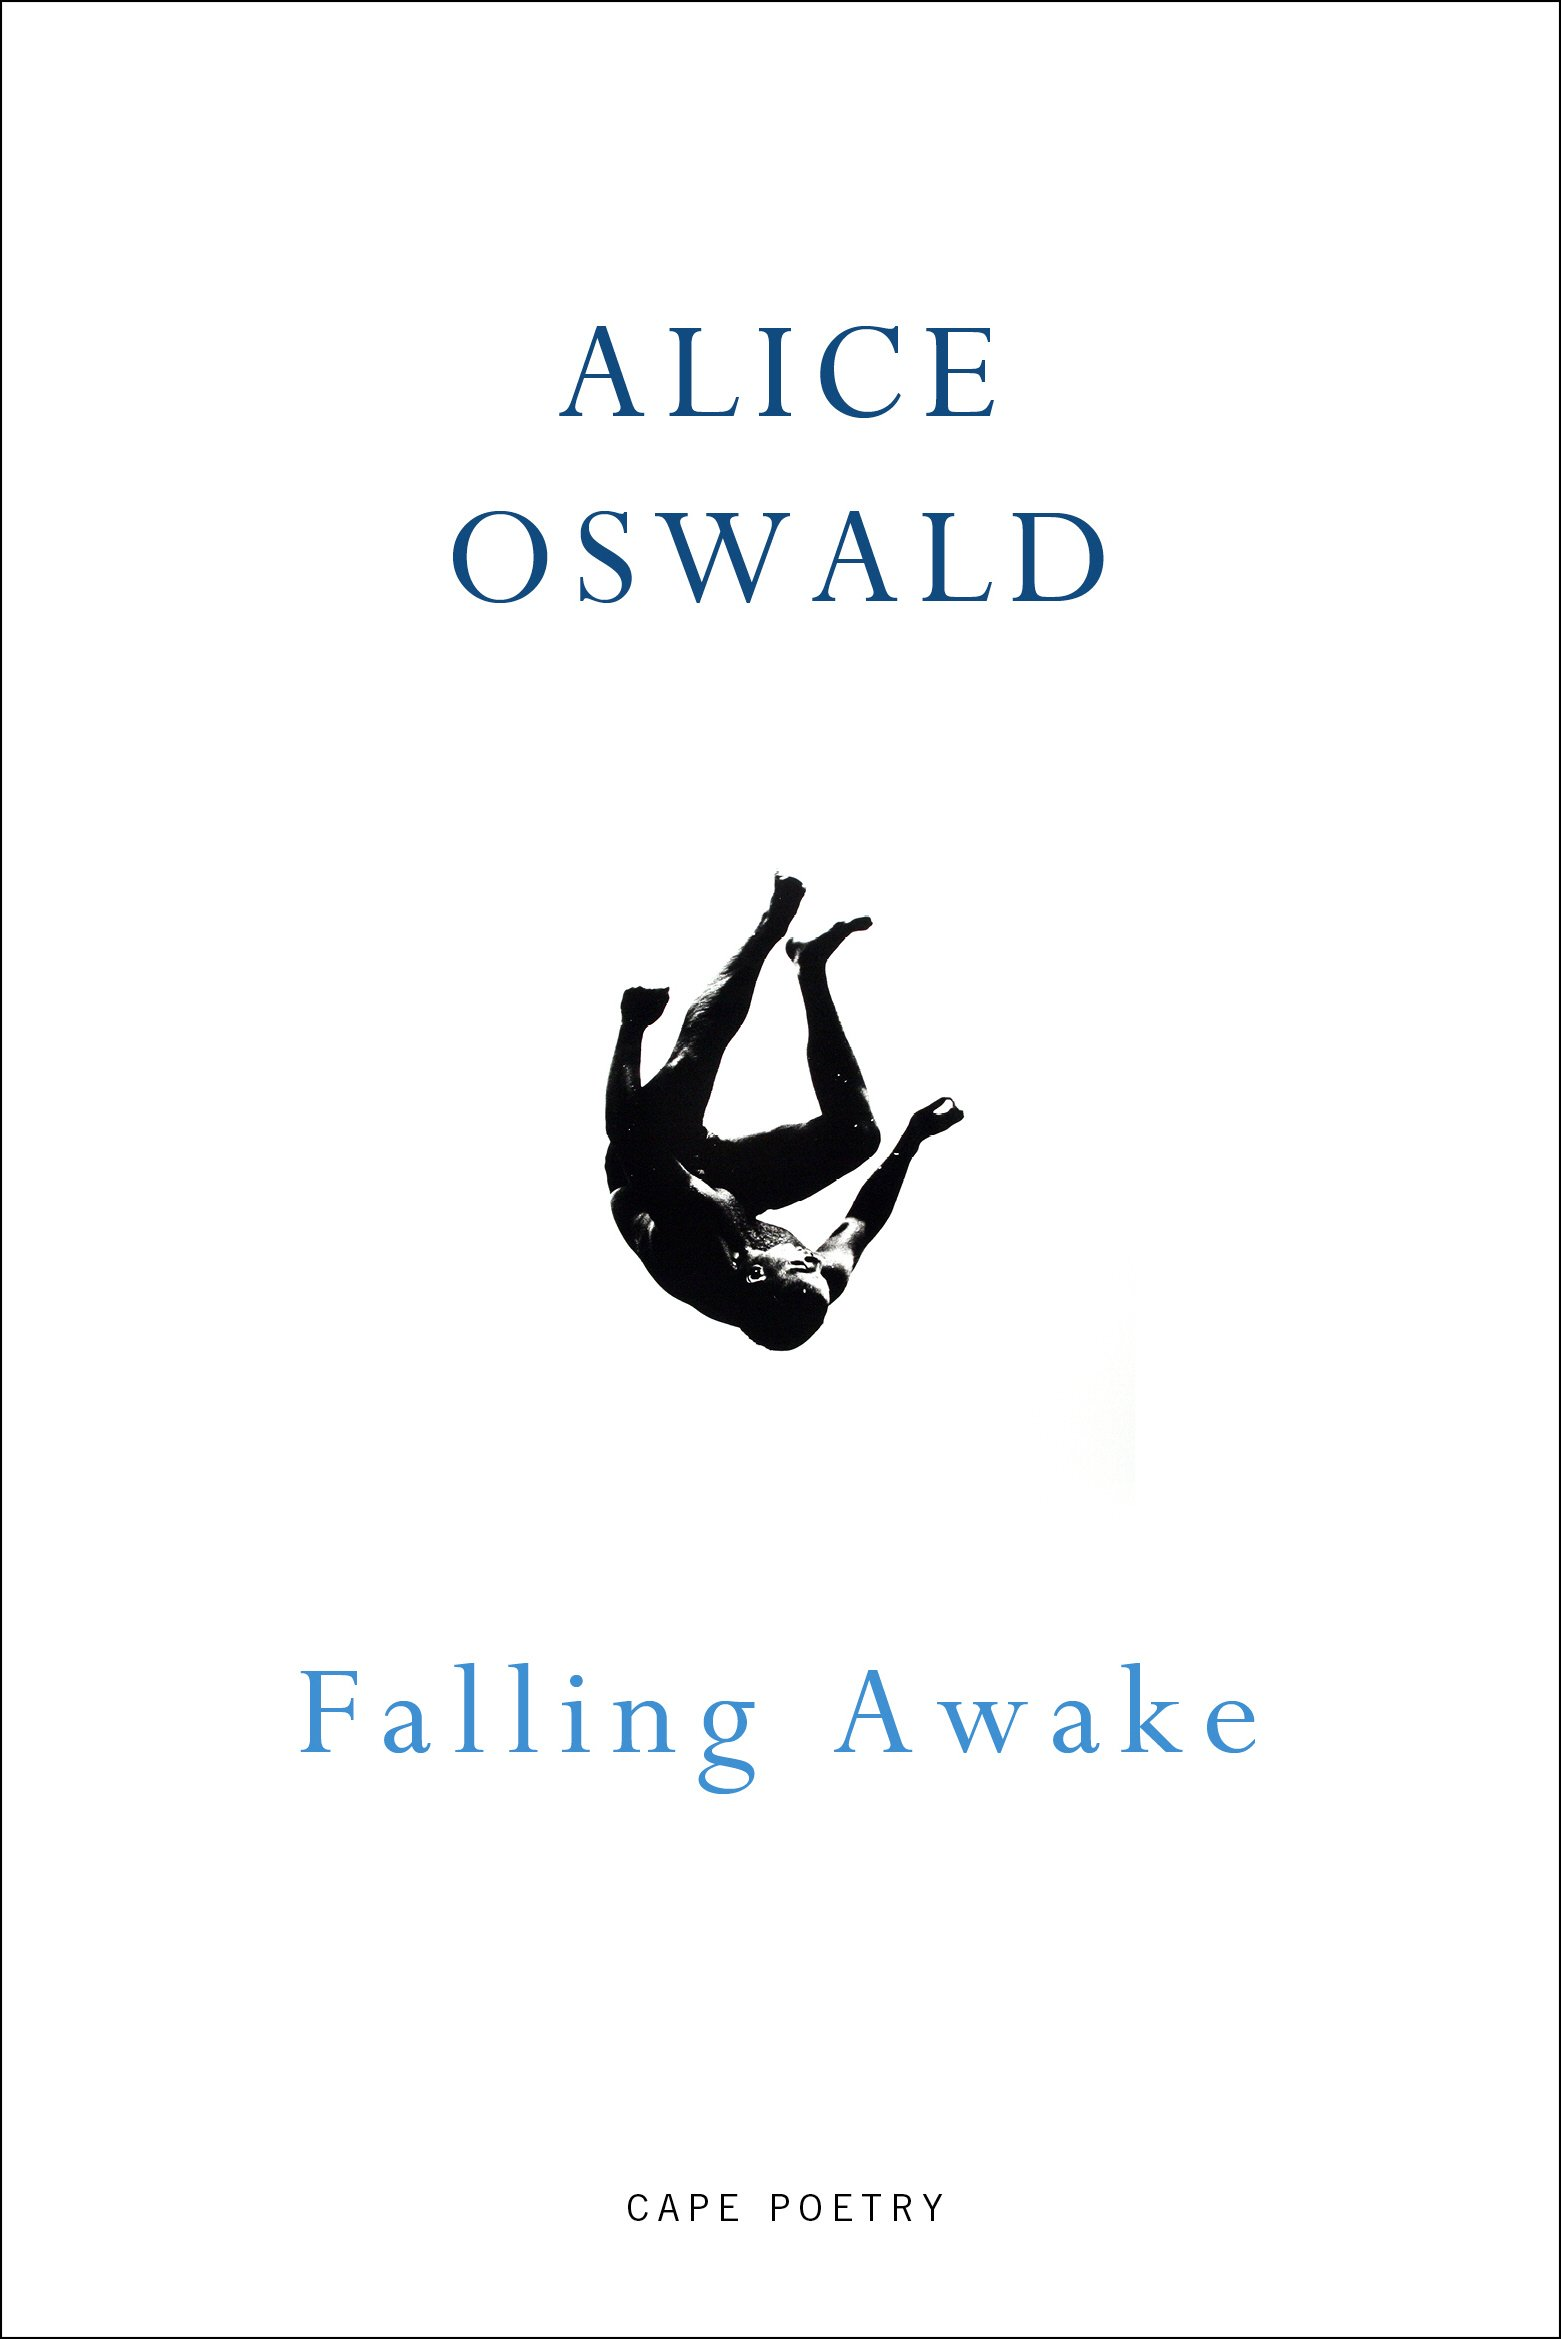 Falling Awake by Alice Oswald (Cape Poetry)